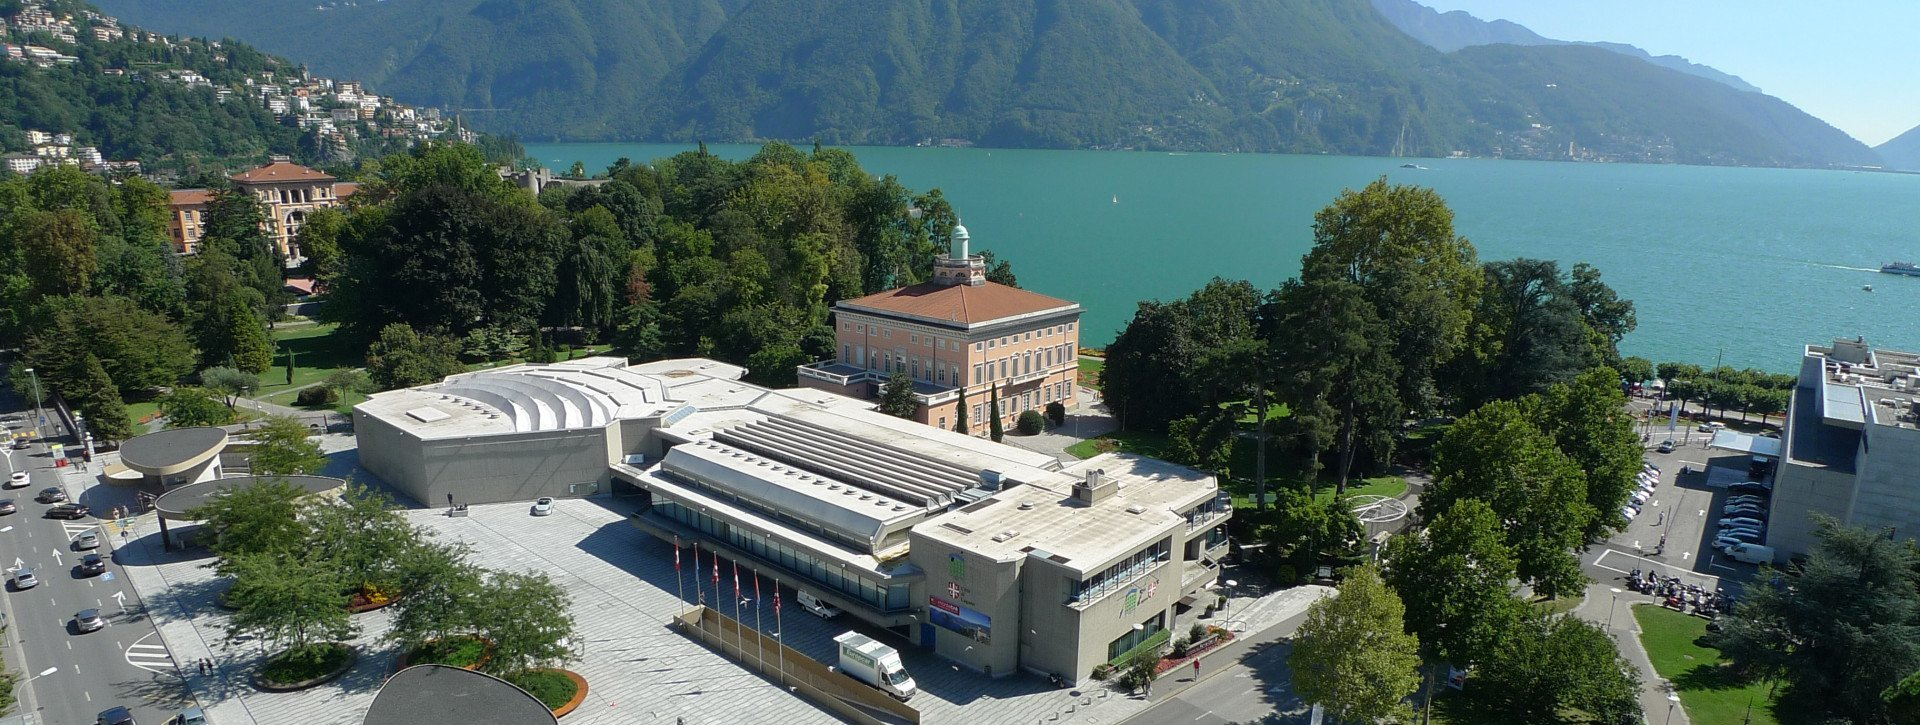 Convention Centre Lugano